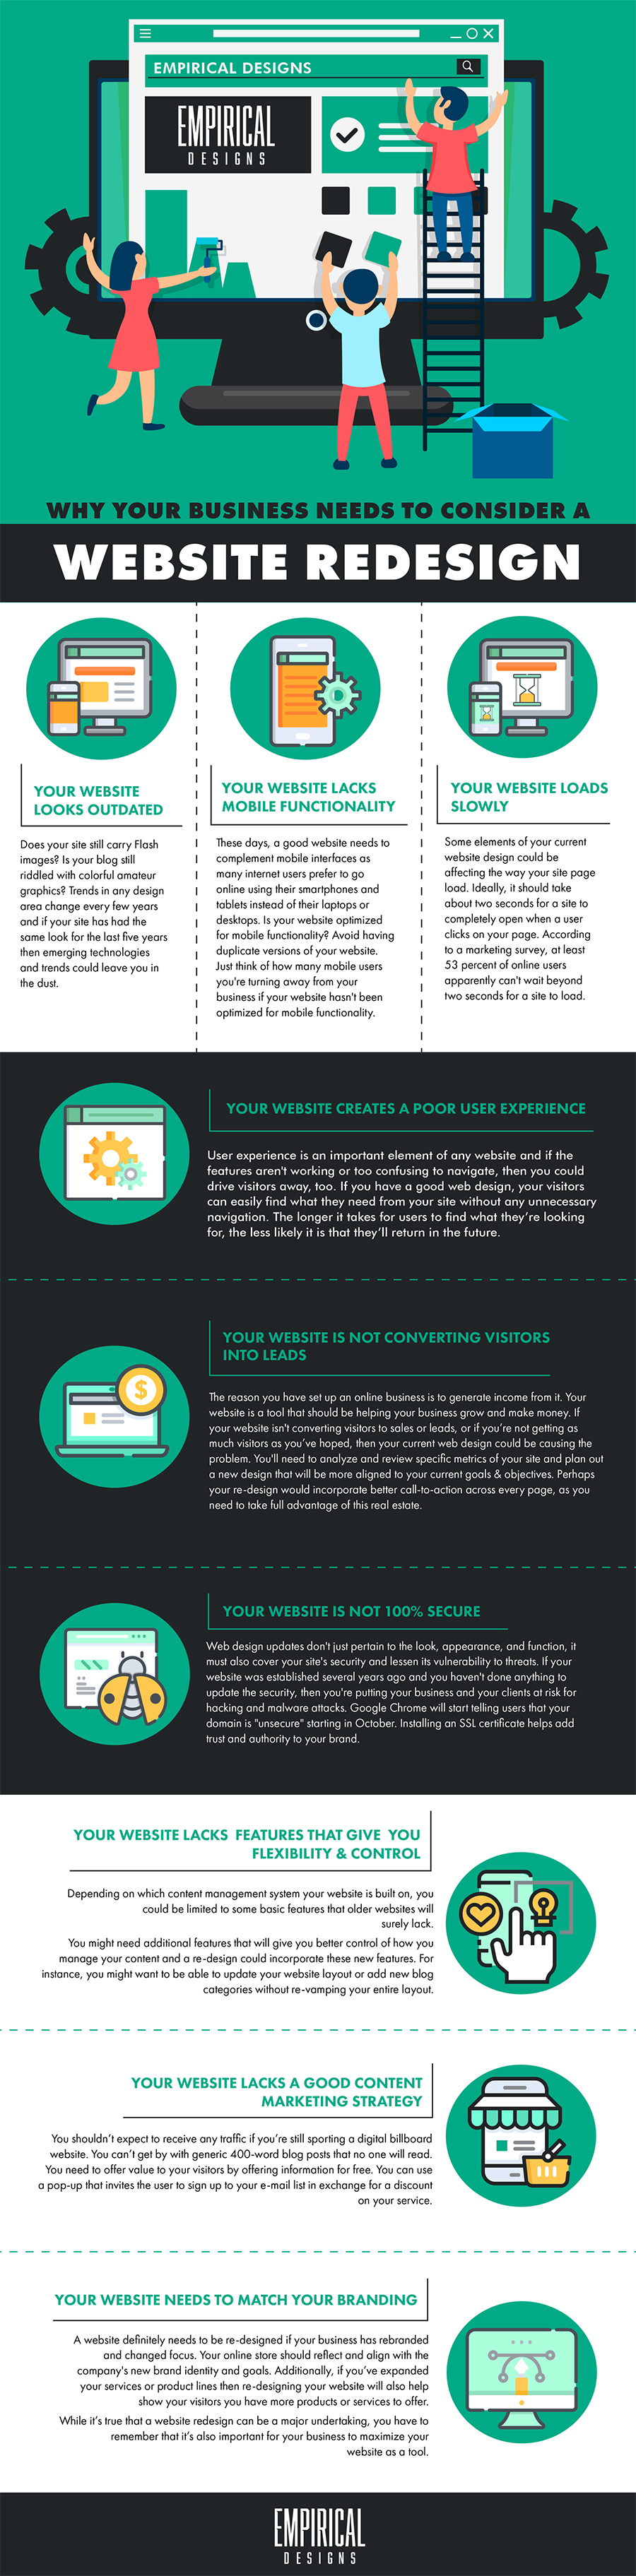 Infographic outlines why you might want to refresh your website